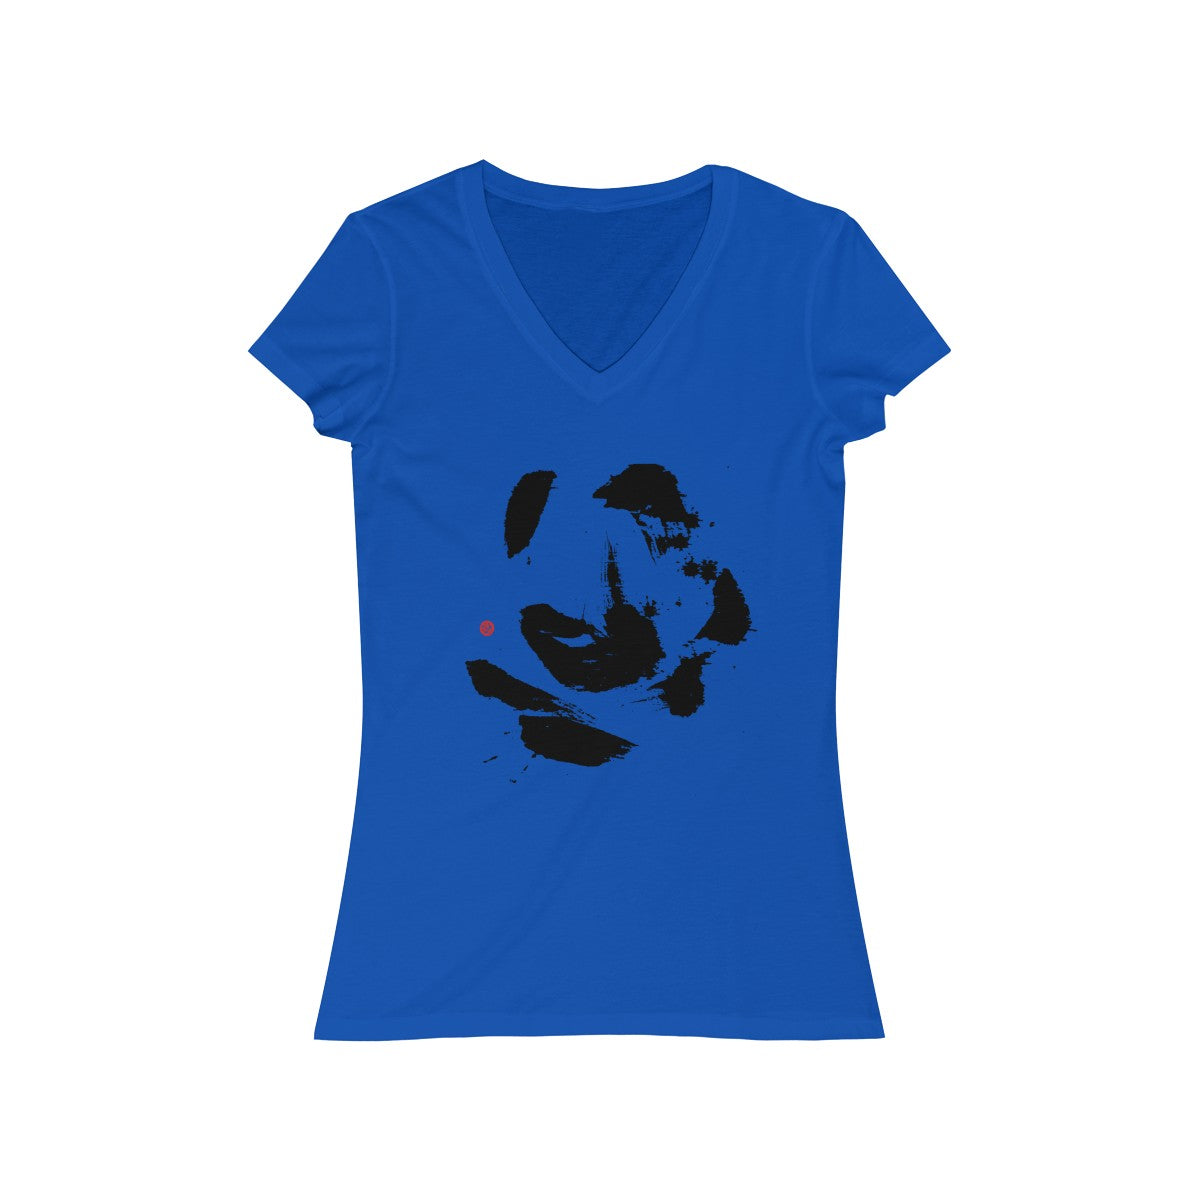 Make a Splash! Women's Jersey Short Sleeve V-Neck Tee